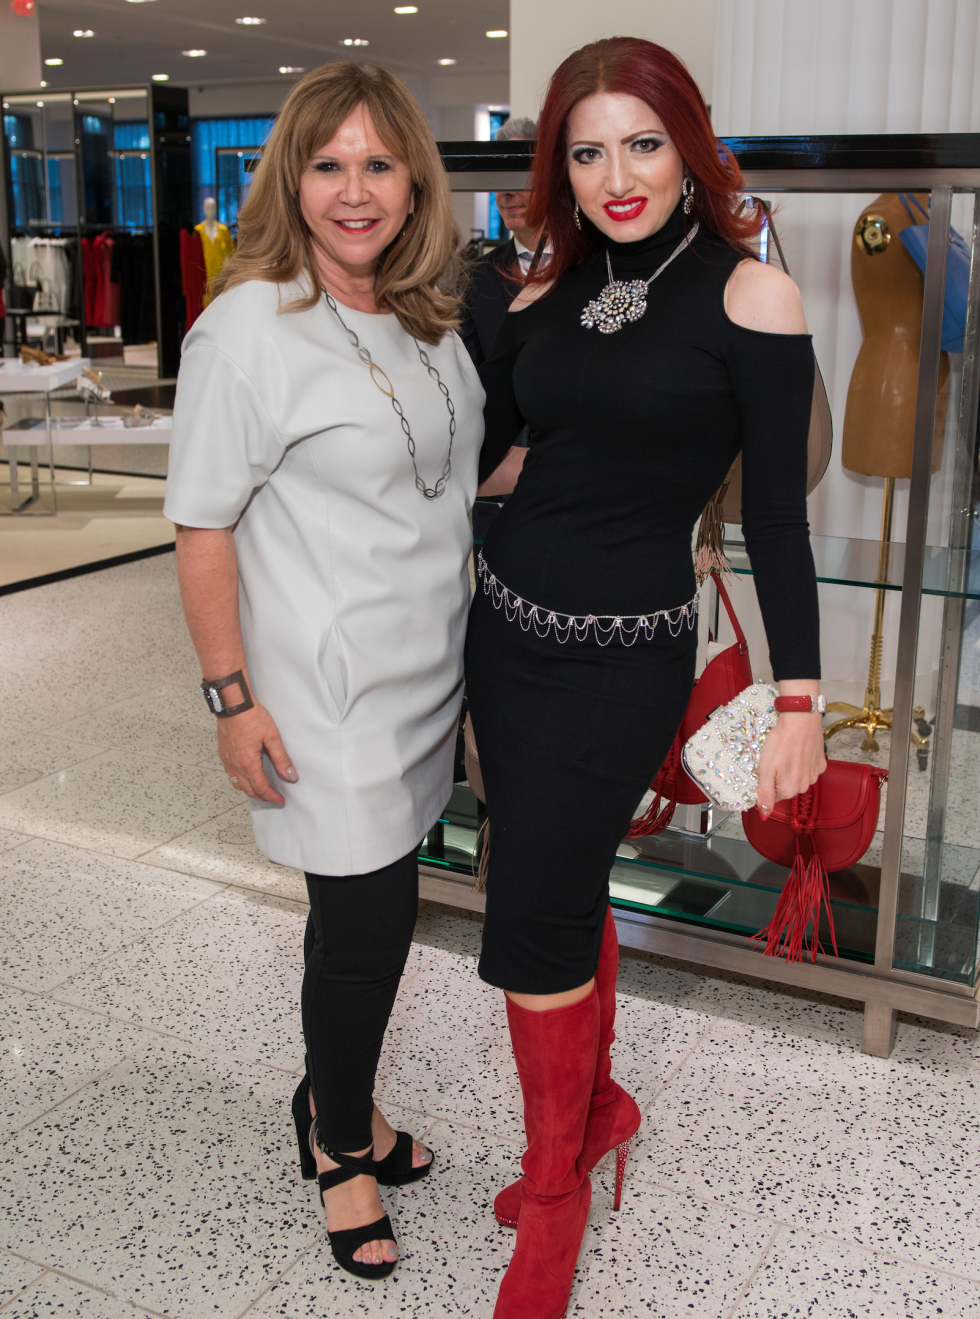 Houston, Latin Women's Initiative Fashion Show and Luncheon, feb 2017, Cyndy Garza Roberts, Yasmine Haddad